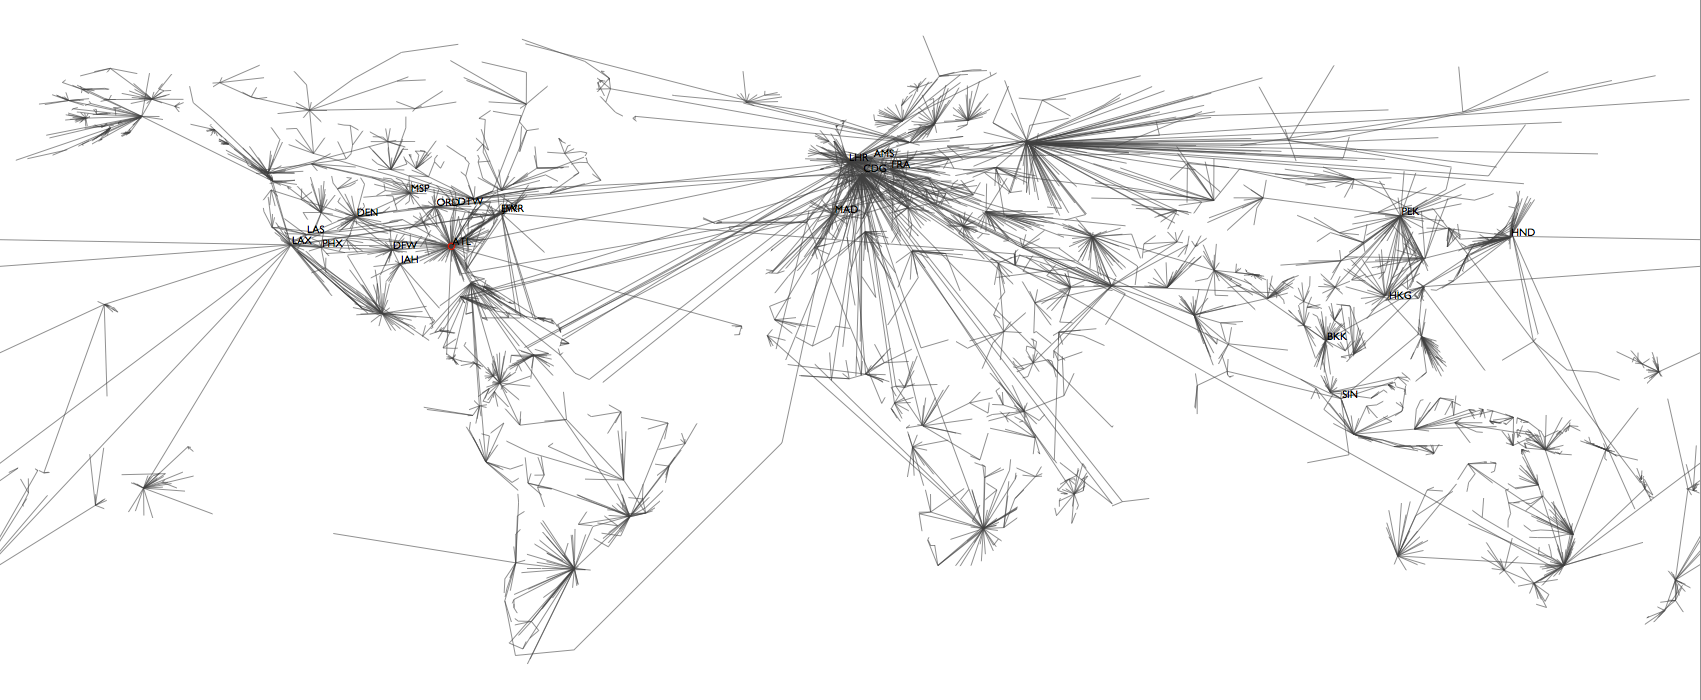 Shortest Path Tree Analysis Reveals And Quantifies The Effect Of Airport Closures On Global Traffic